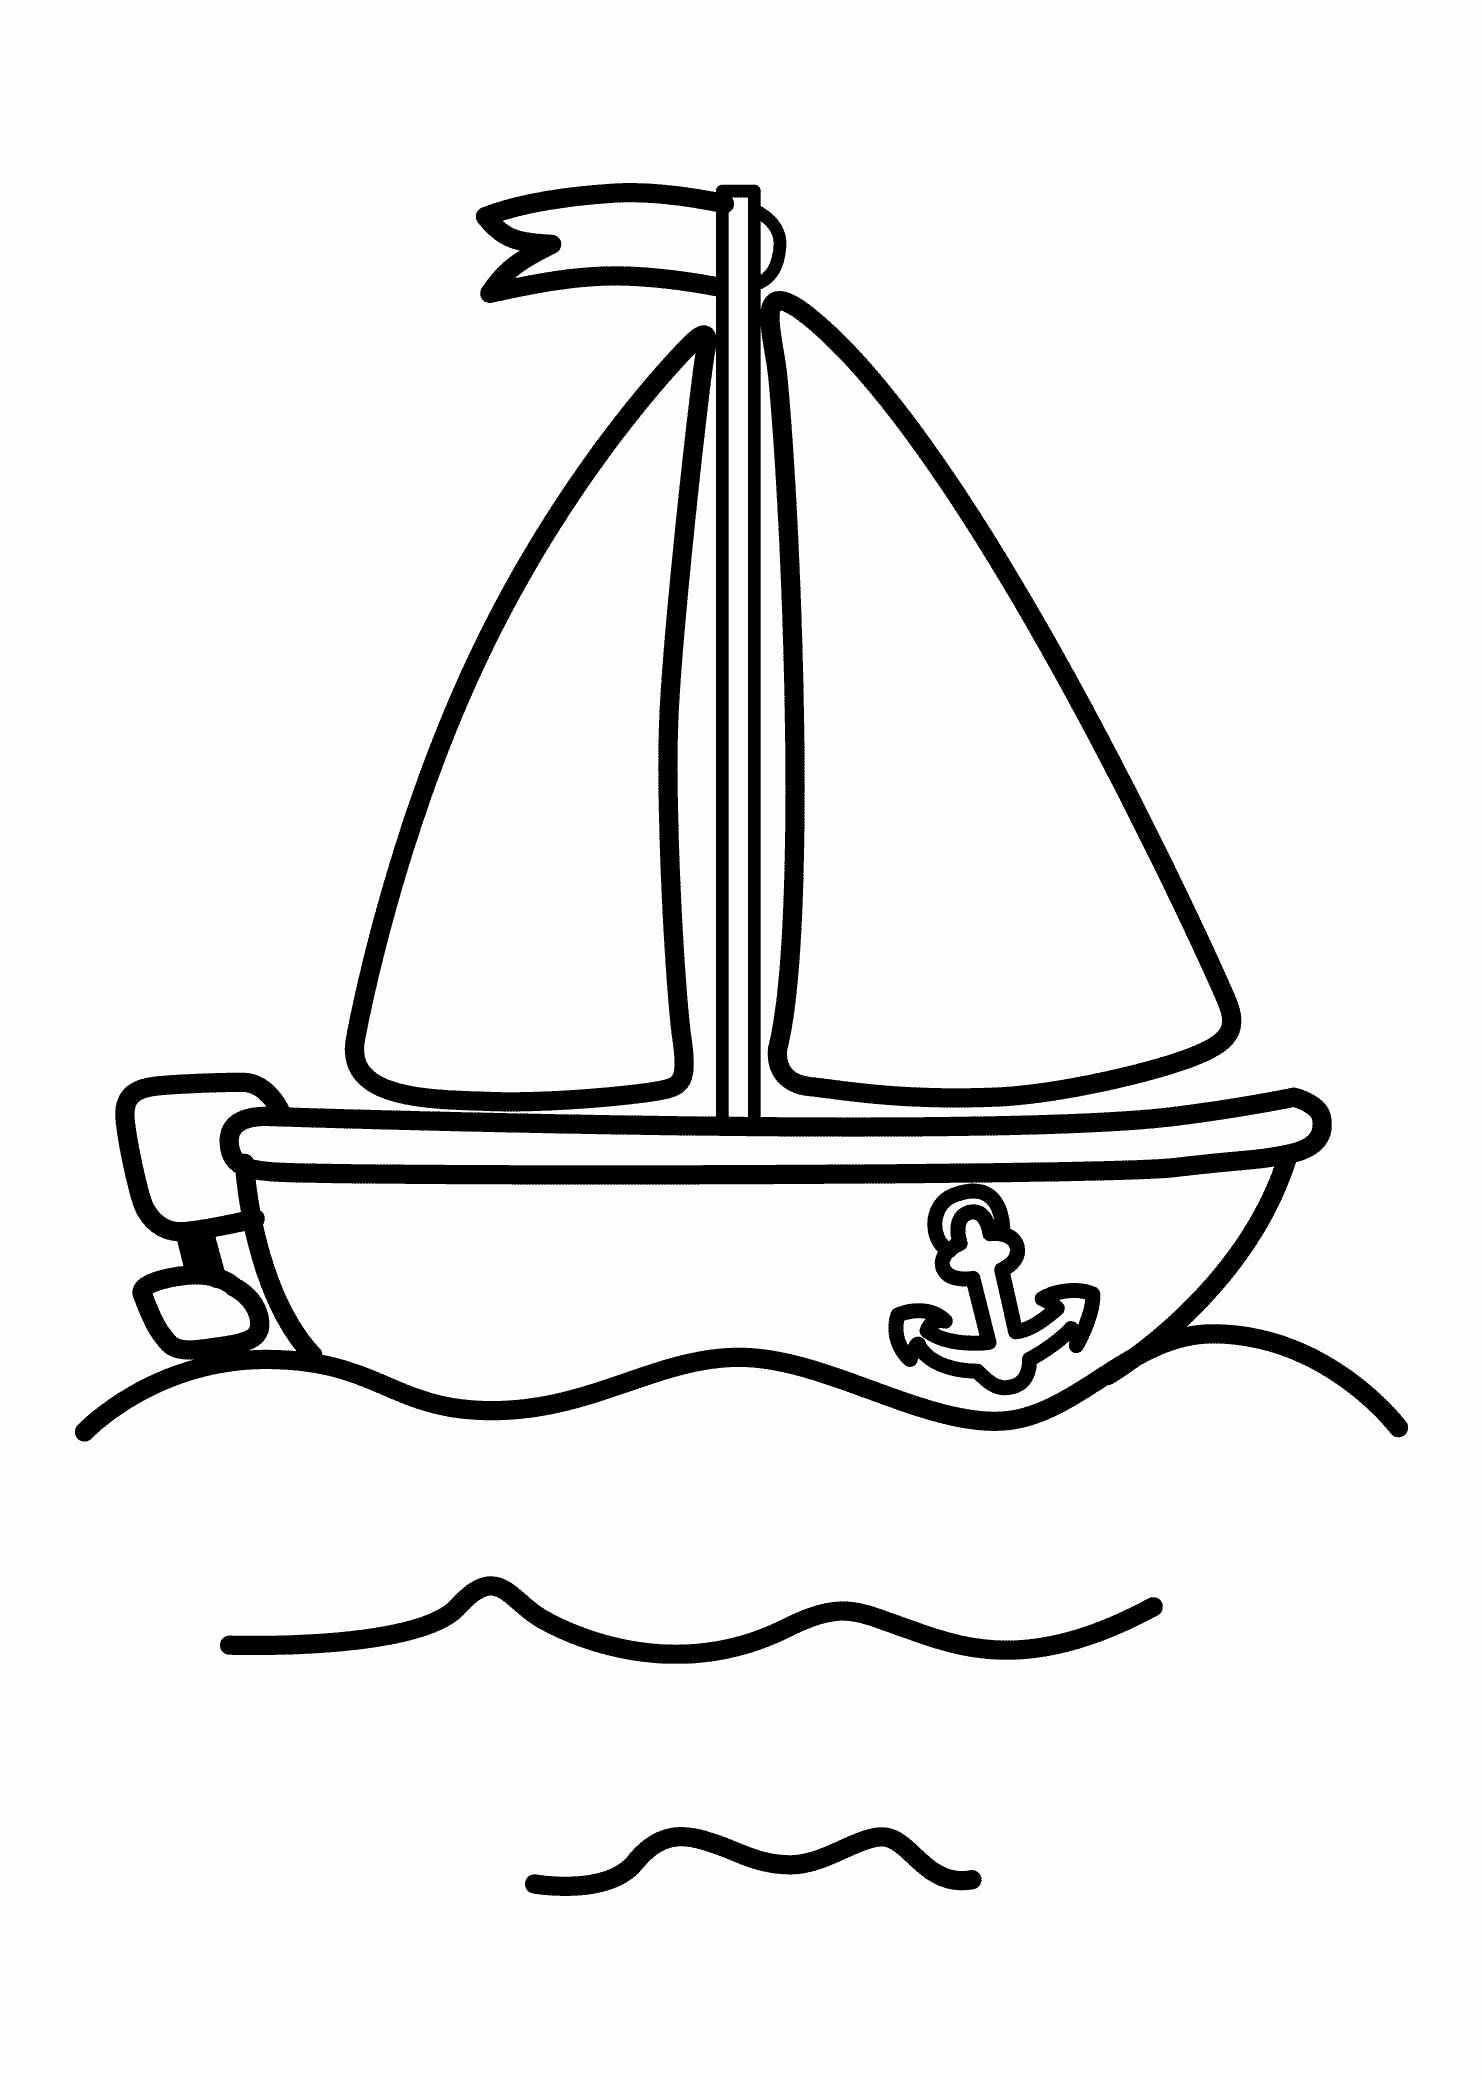 Boat Worksheets for Preschoolers Fresh 21 Printable Boat Coloring Pages Free Download